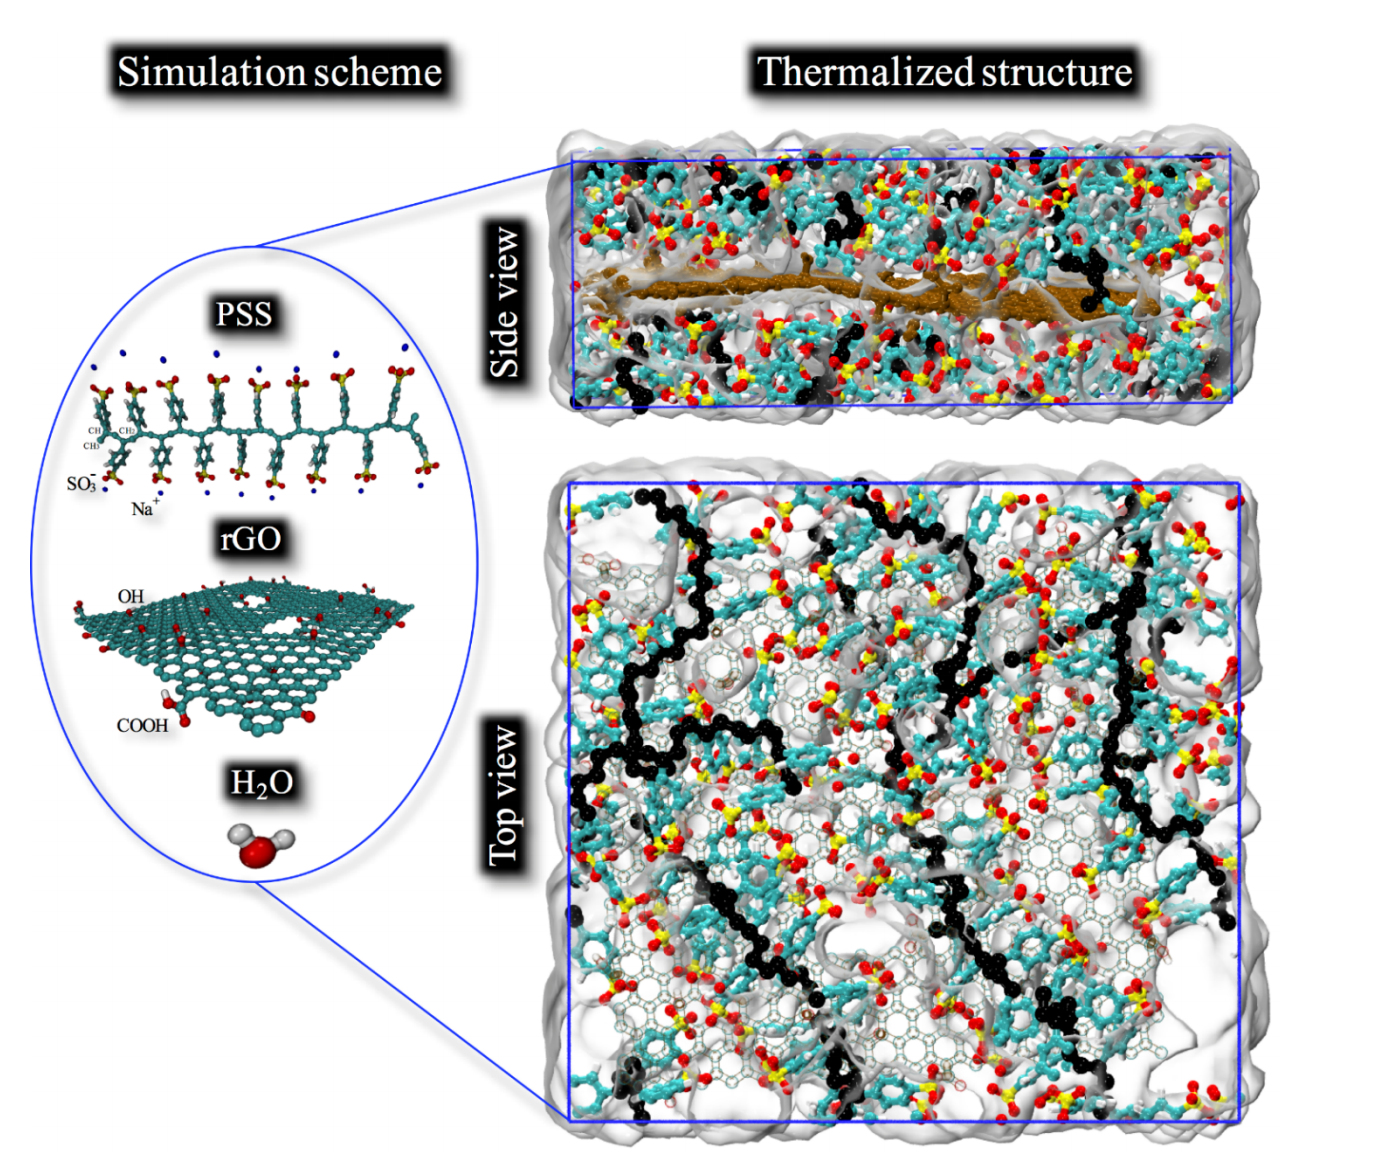 Synthesis, characterization and computational simulation of graphene nanoplatelets stabilized in poly (styrene sulfonate) sodium salt (under review)